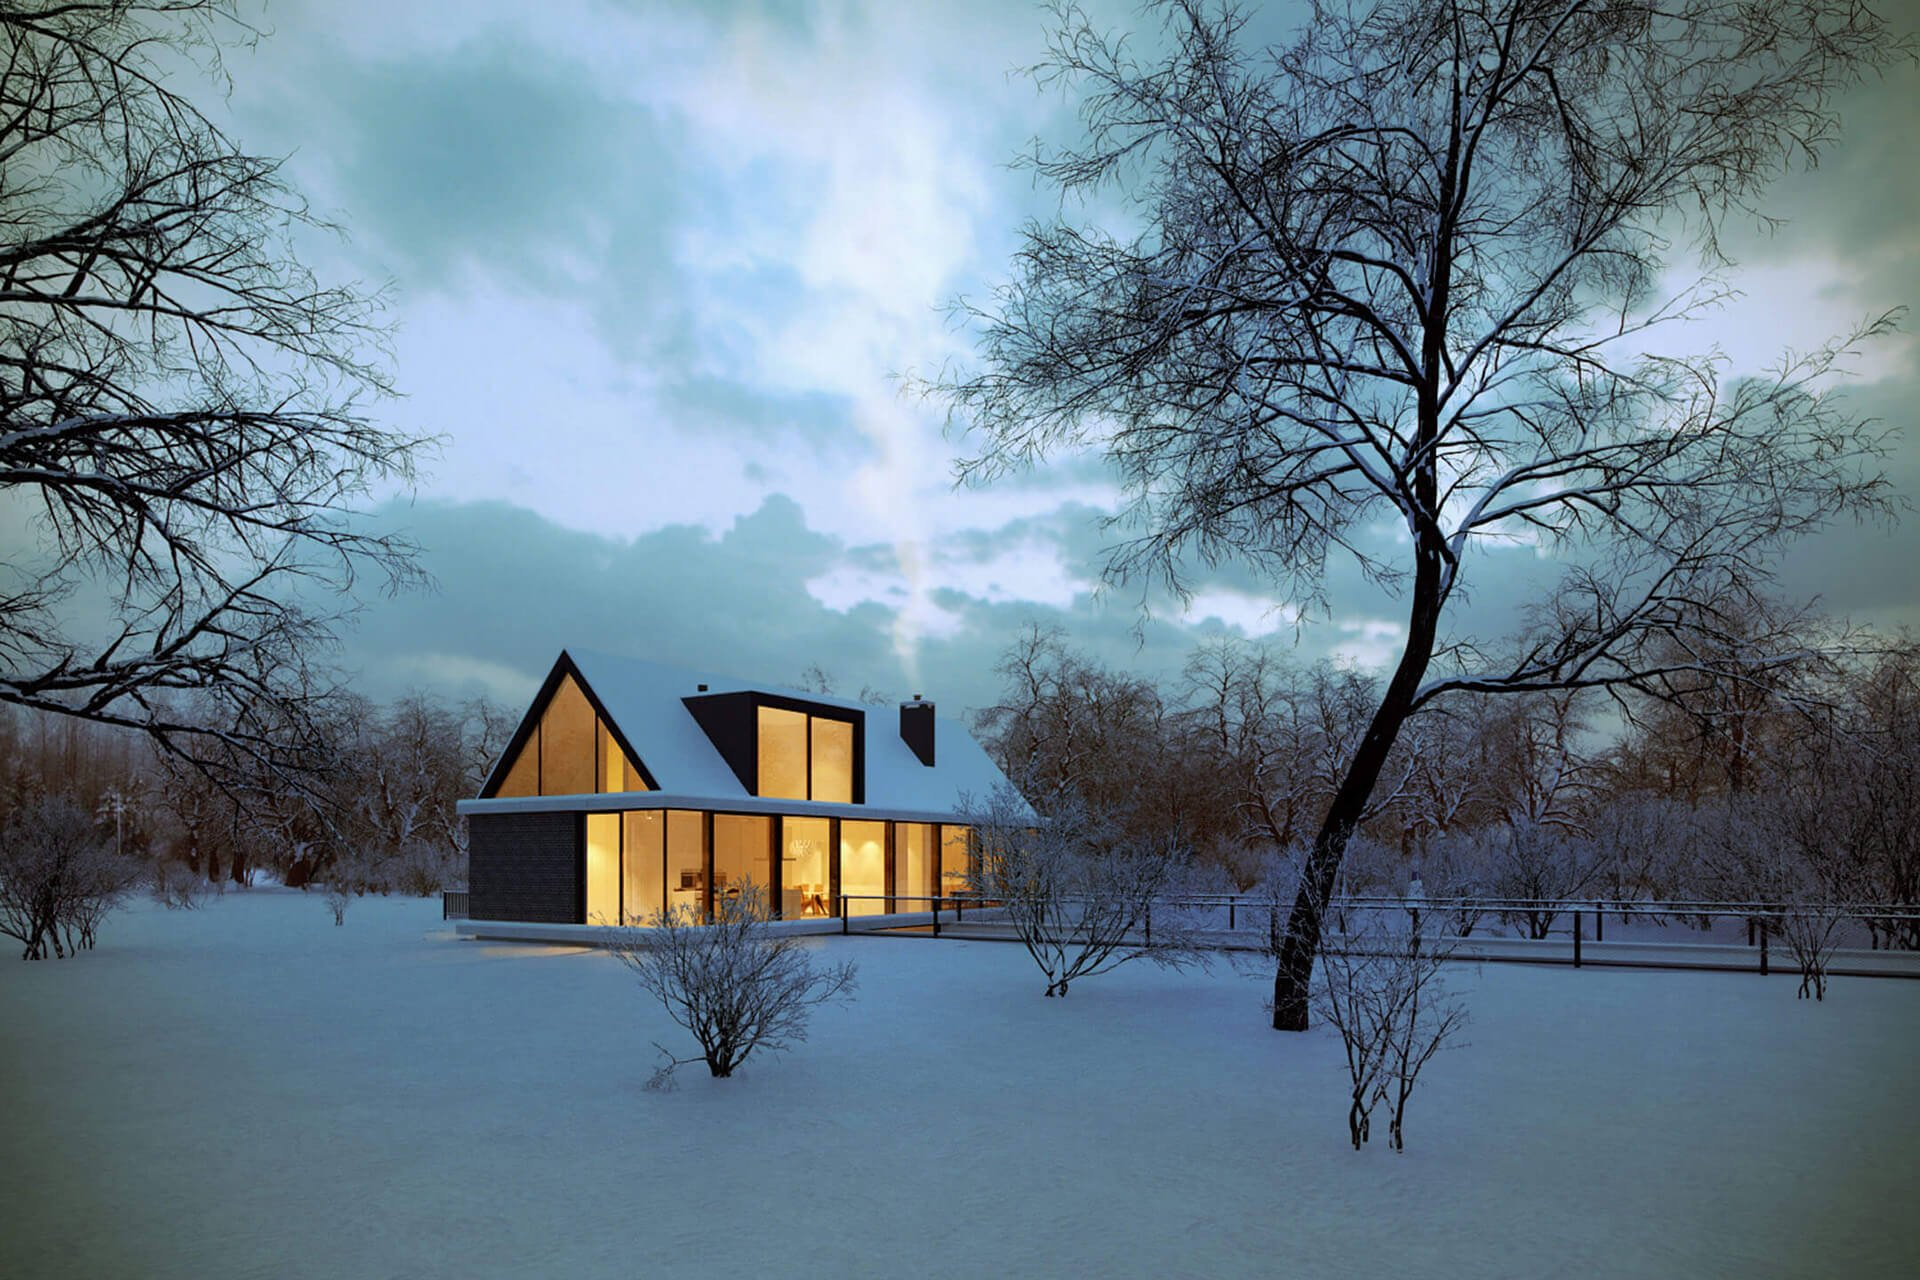 3D Architectural Visualization Of a House in Winter Setting